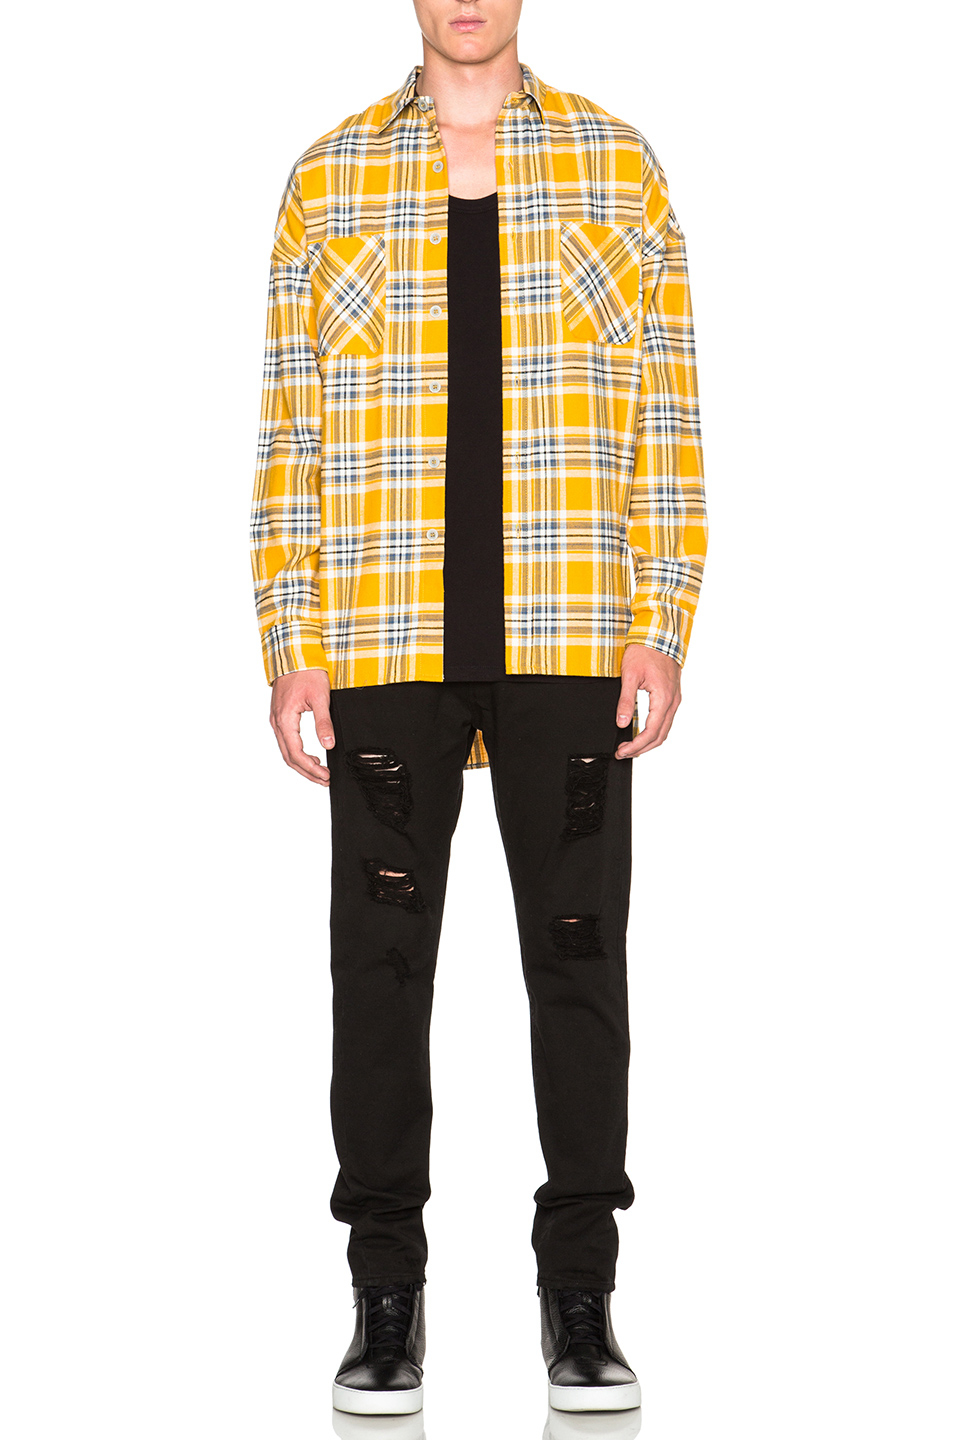 Fear of god Flannel Shirt in Yellow | Lyst